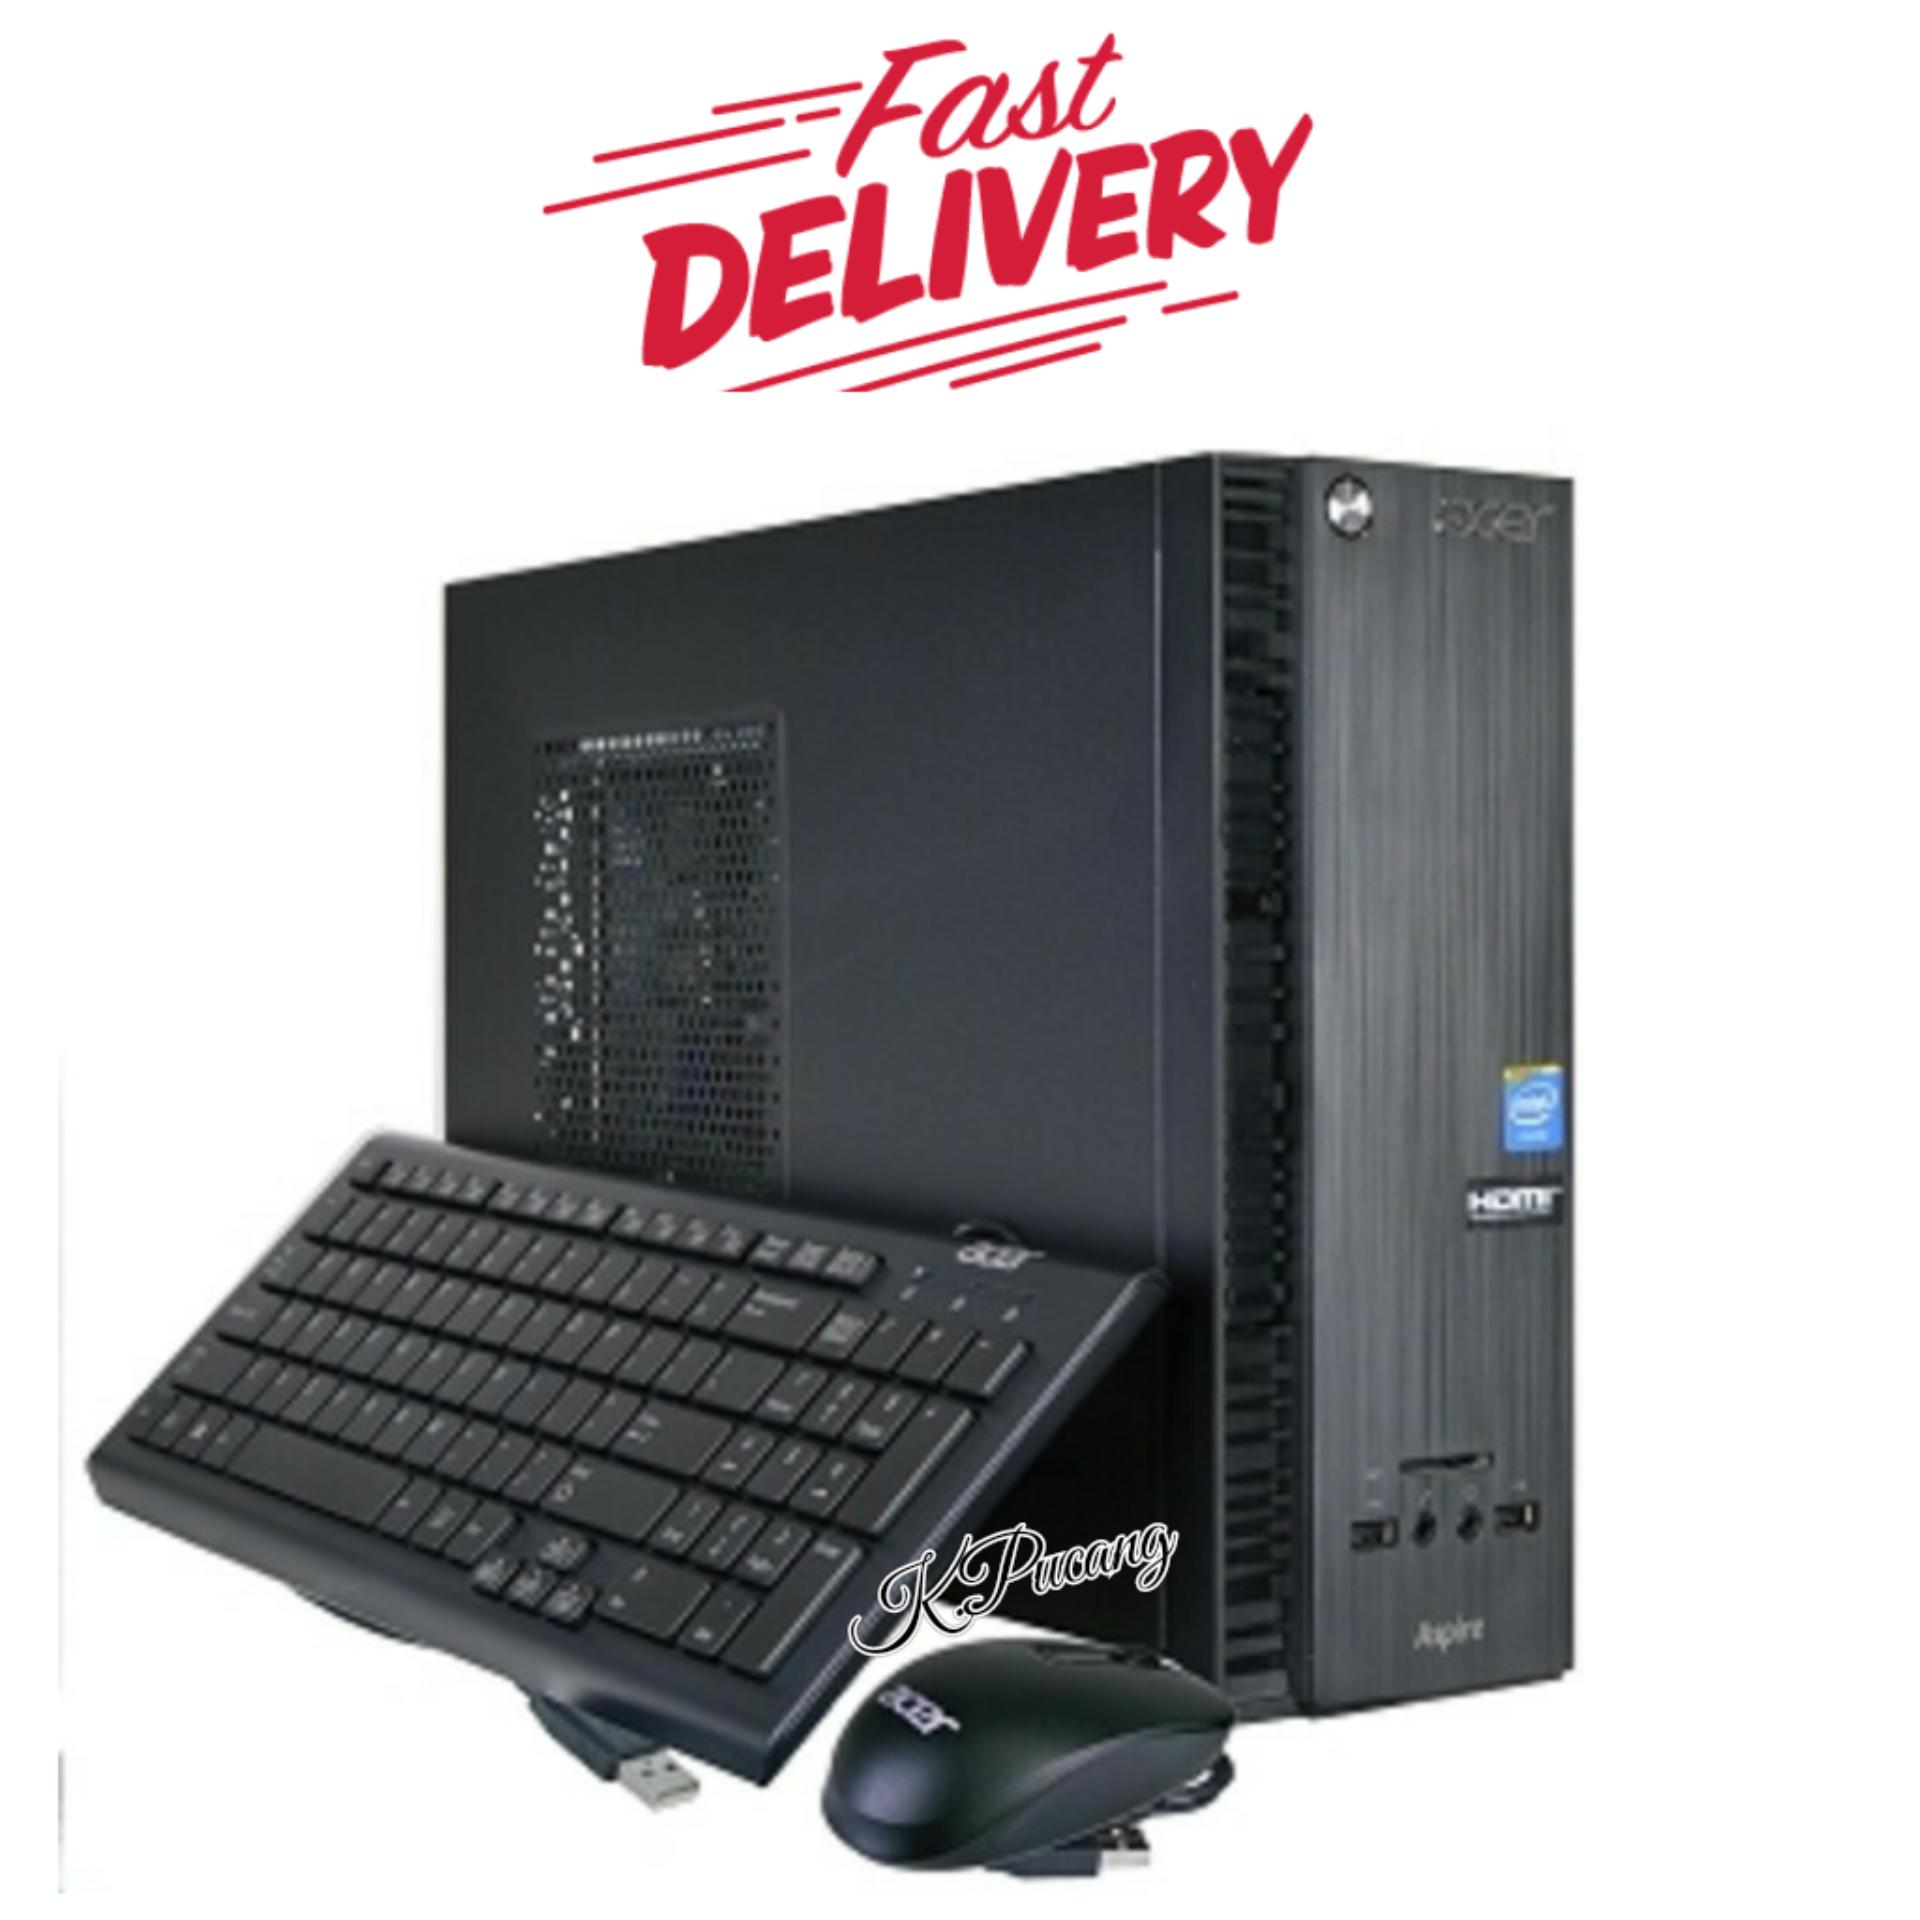 Pc Built Up Acer Aspire Xc 704G Intel Celeron Cpu N3050 4Gb Ram 500Gb Hdd Windows 10 Home Black Free Asuransi Paket Asli